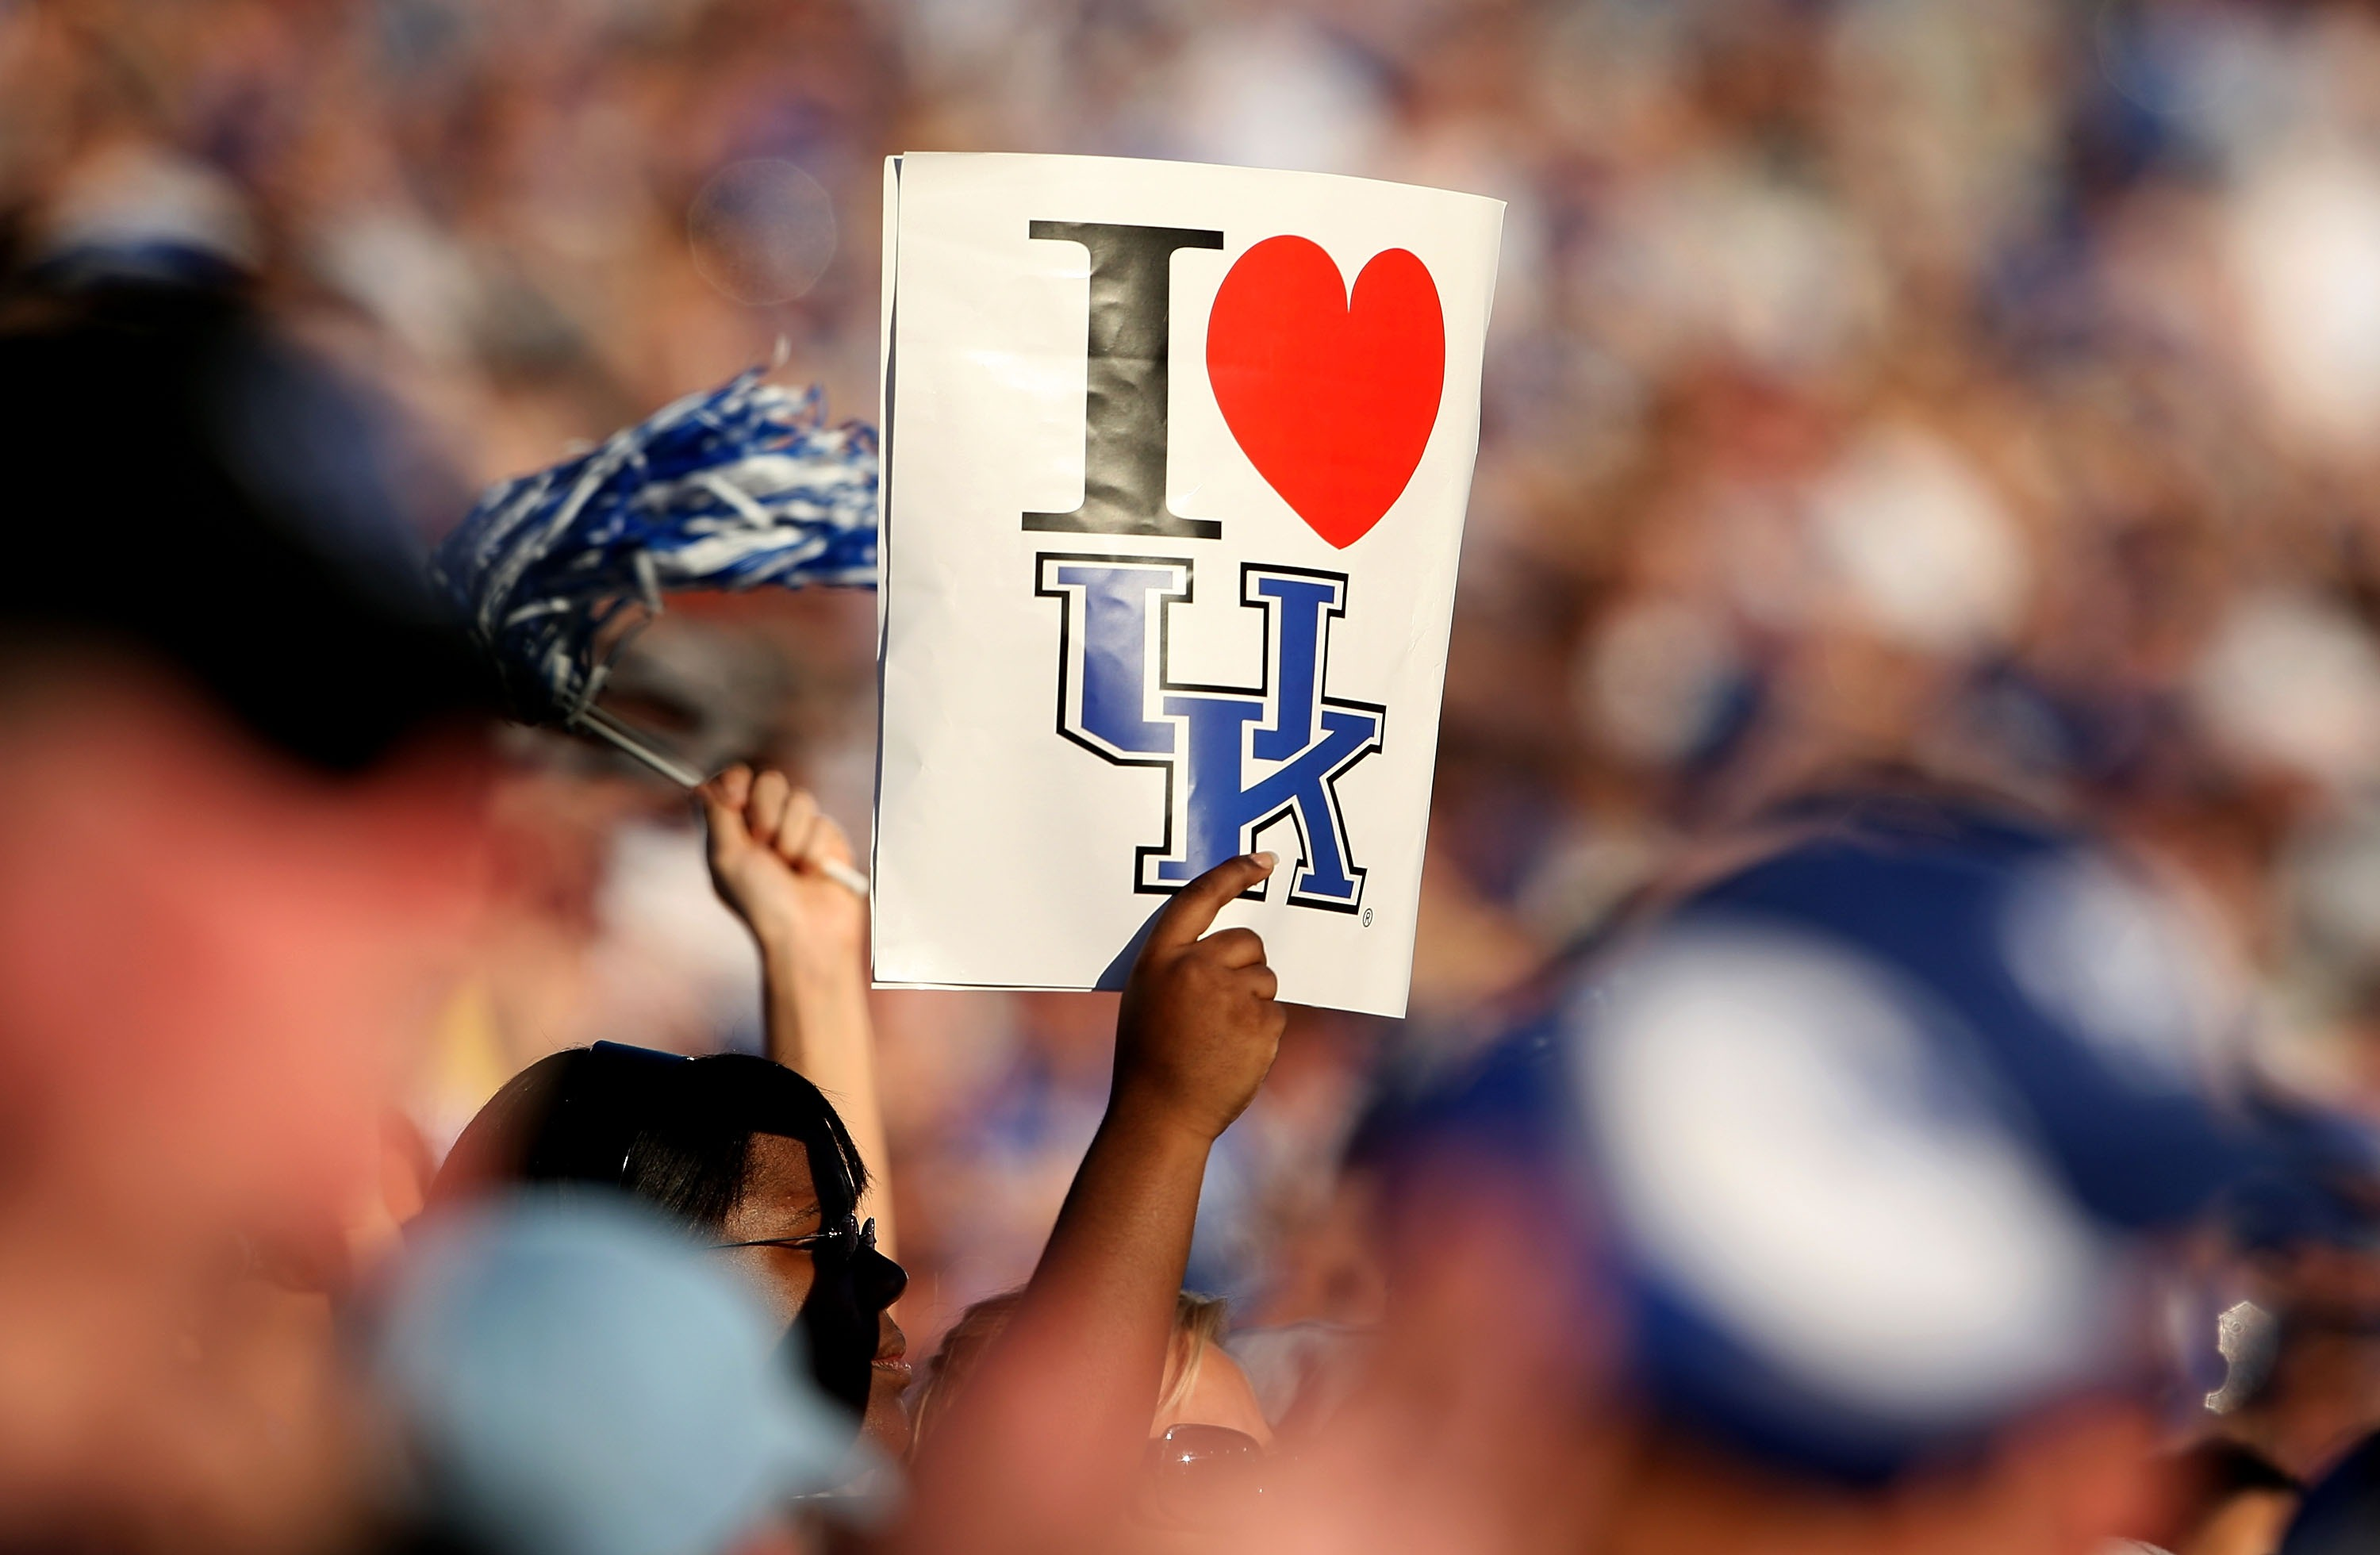 LEXINGTON, KY - OCTOBER 20:  A fan of the Kentucky Wildcats shows their support during the SEC game against the Florida Gators on October 20, 2007 at Commonwealth Stadium in Lexington, Kentucky.  (Photo by Andy Lyons/Getty Images)